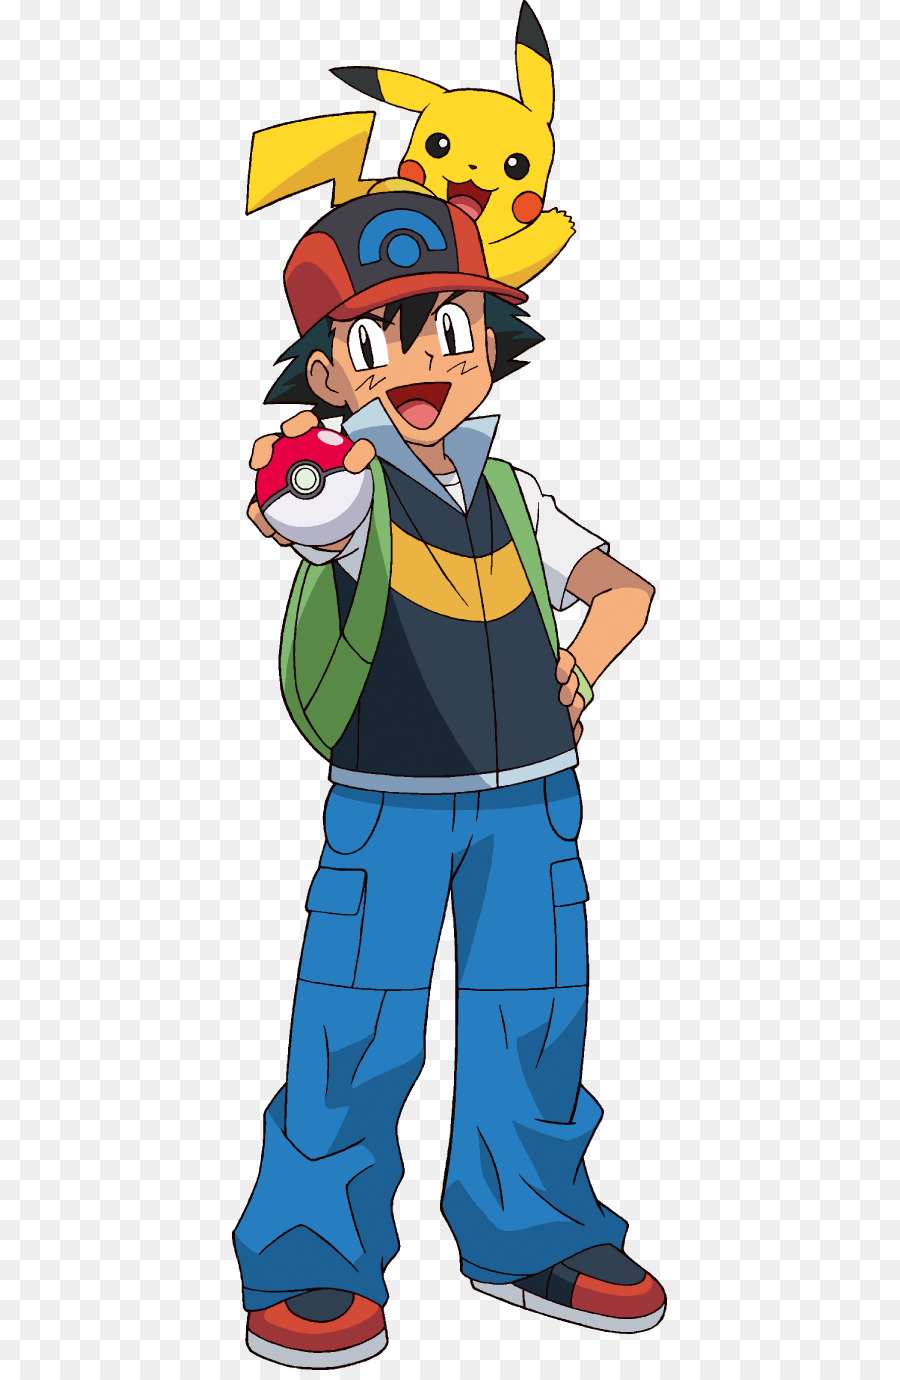 Download Free png Ash Ketchum Pikachu Pokémon Diamond and Pearl.